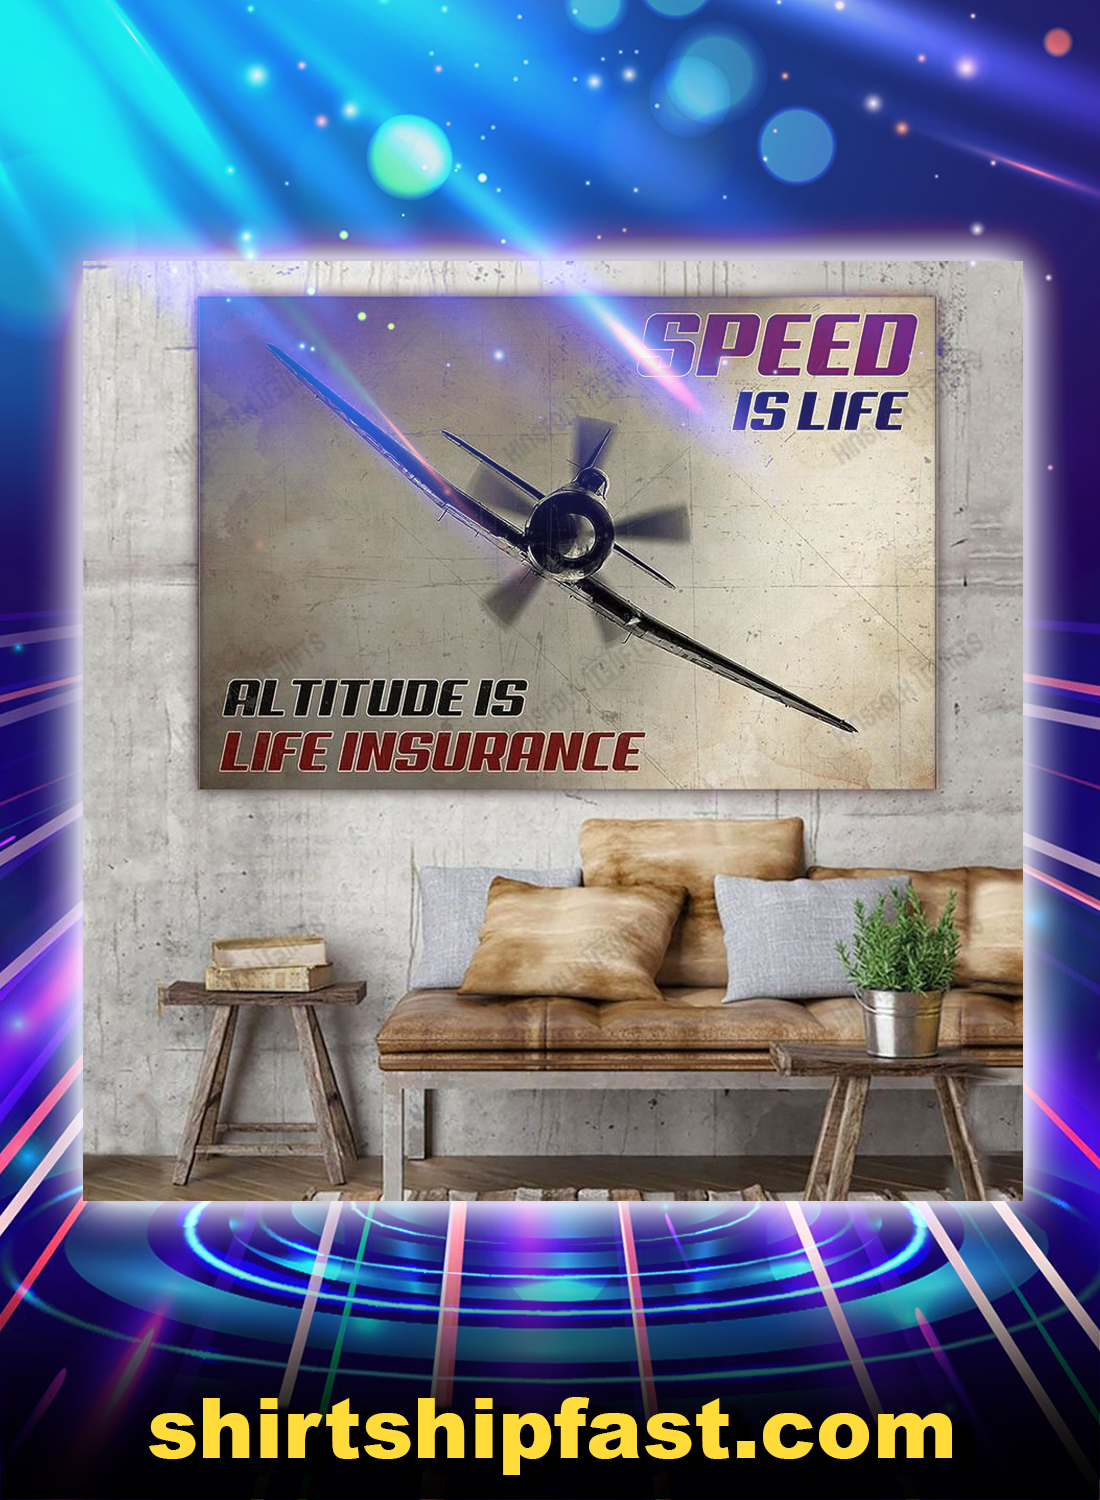 Pilot speed is life altitude is life insurance canvas prints